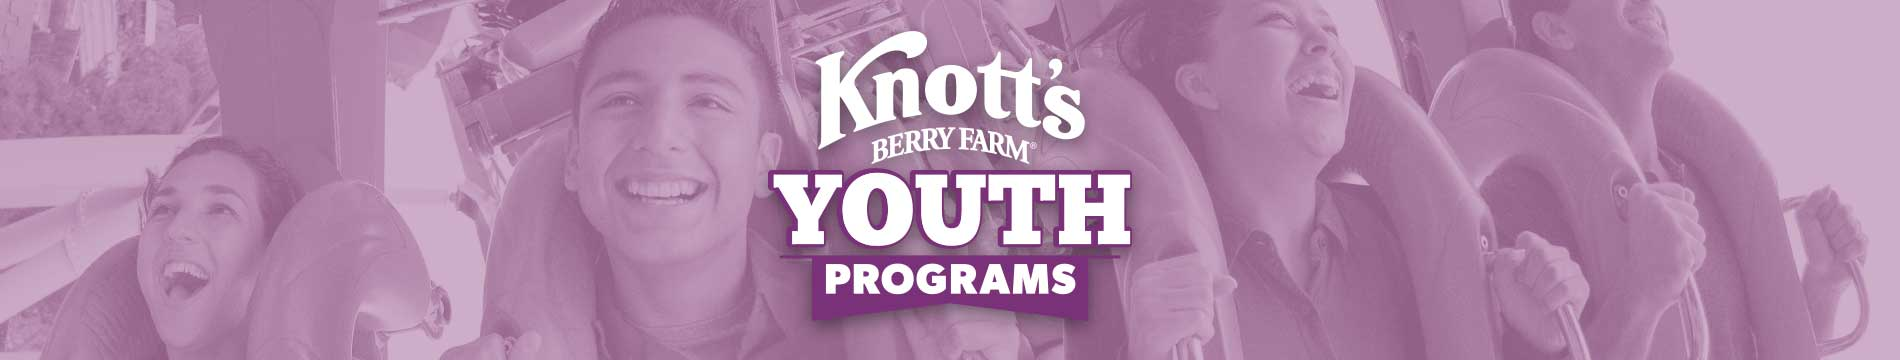 Knott's Berry Farm Student and Youth Groups